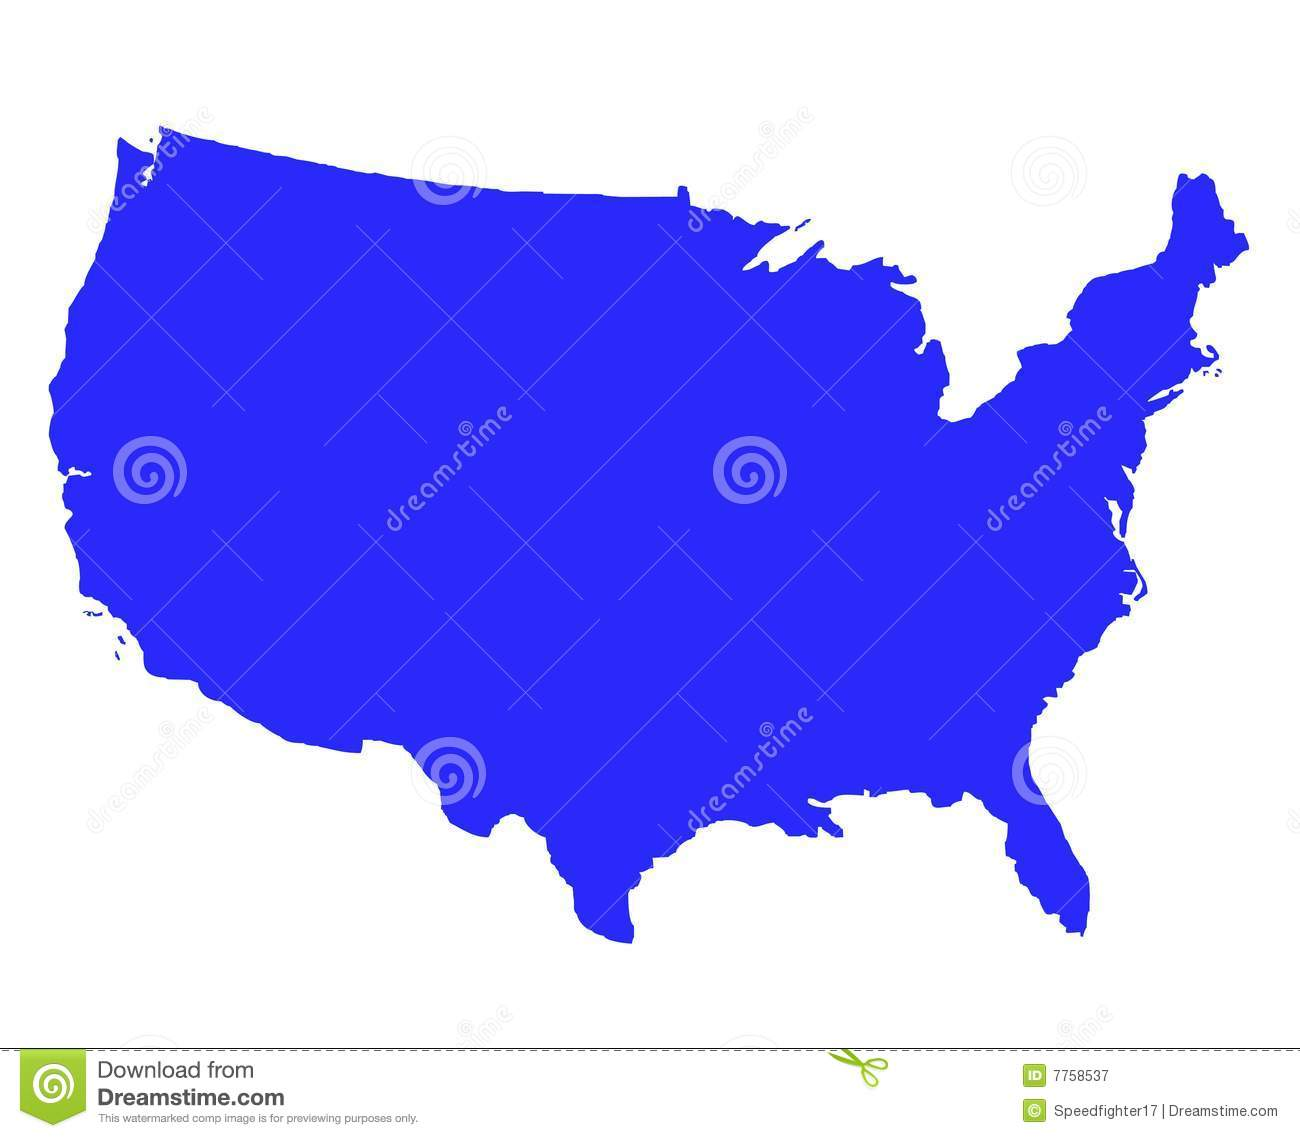 United States Of America USA Free Map Free Blank Map Free Outline - Free blank us map with state outlines